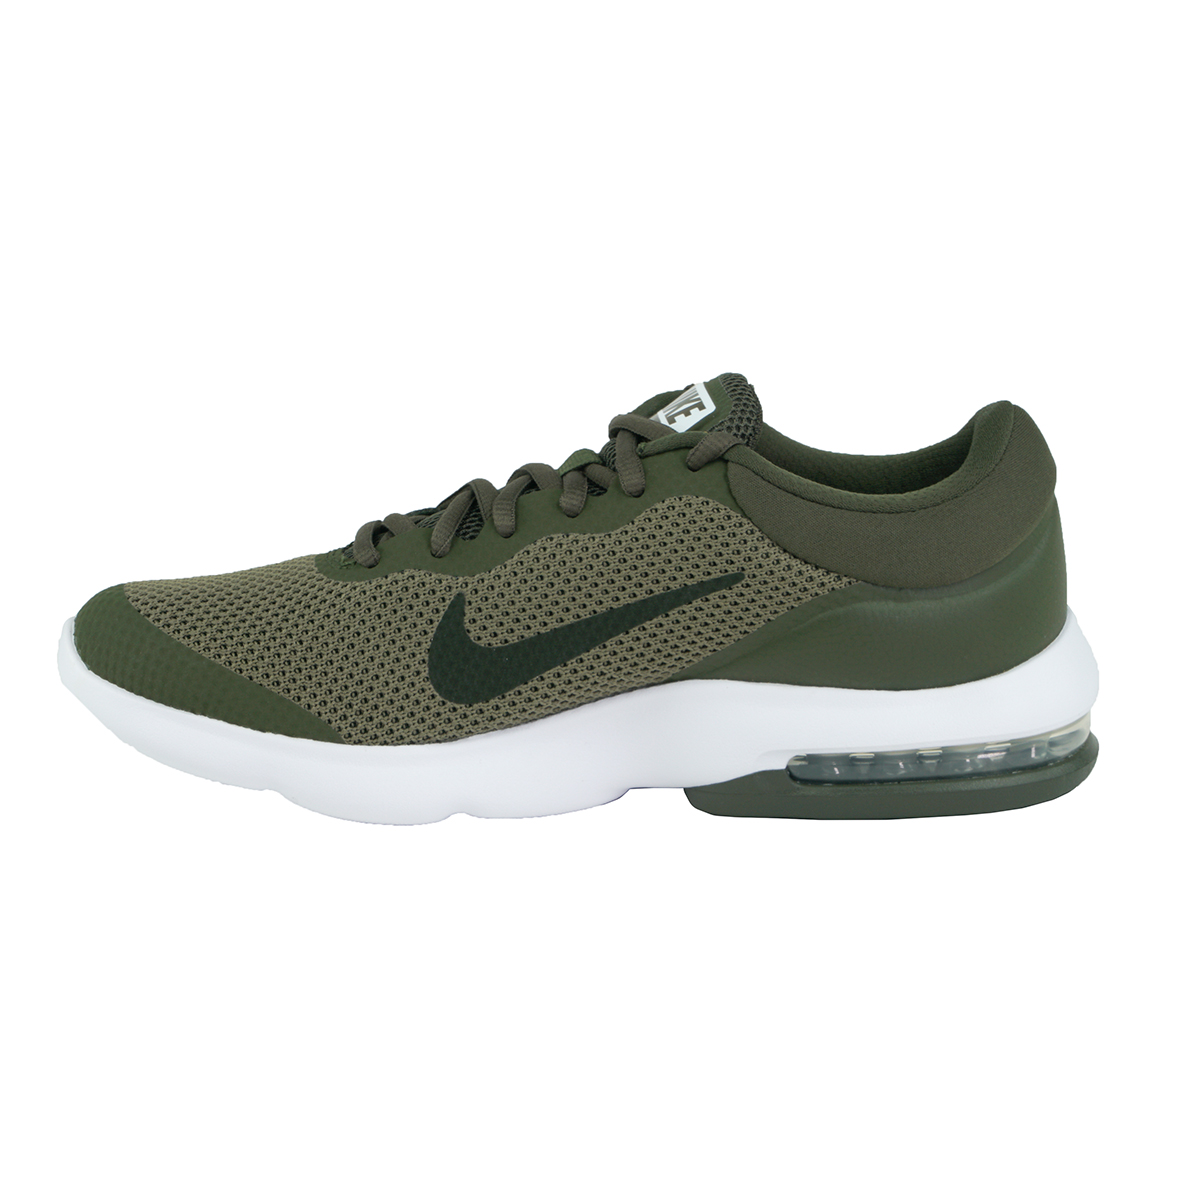 Nike-Men-039-s-Air-Max-Advantage-Shoes